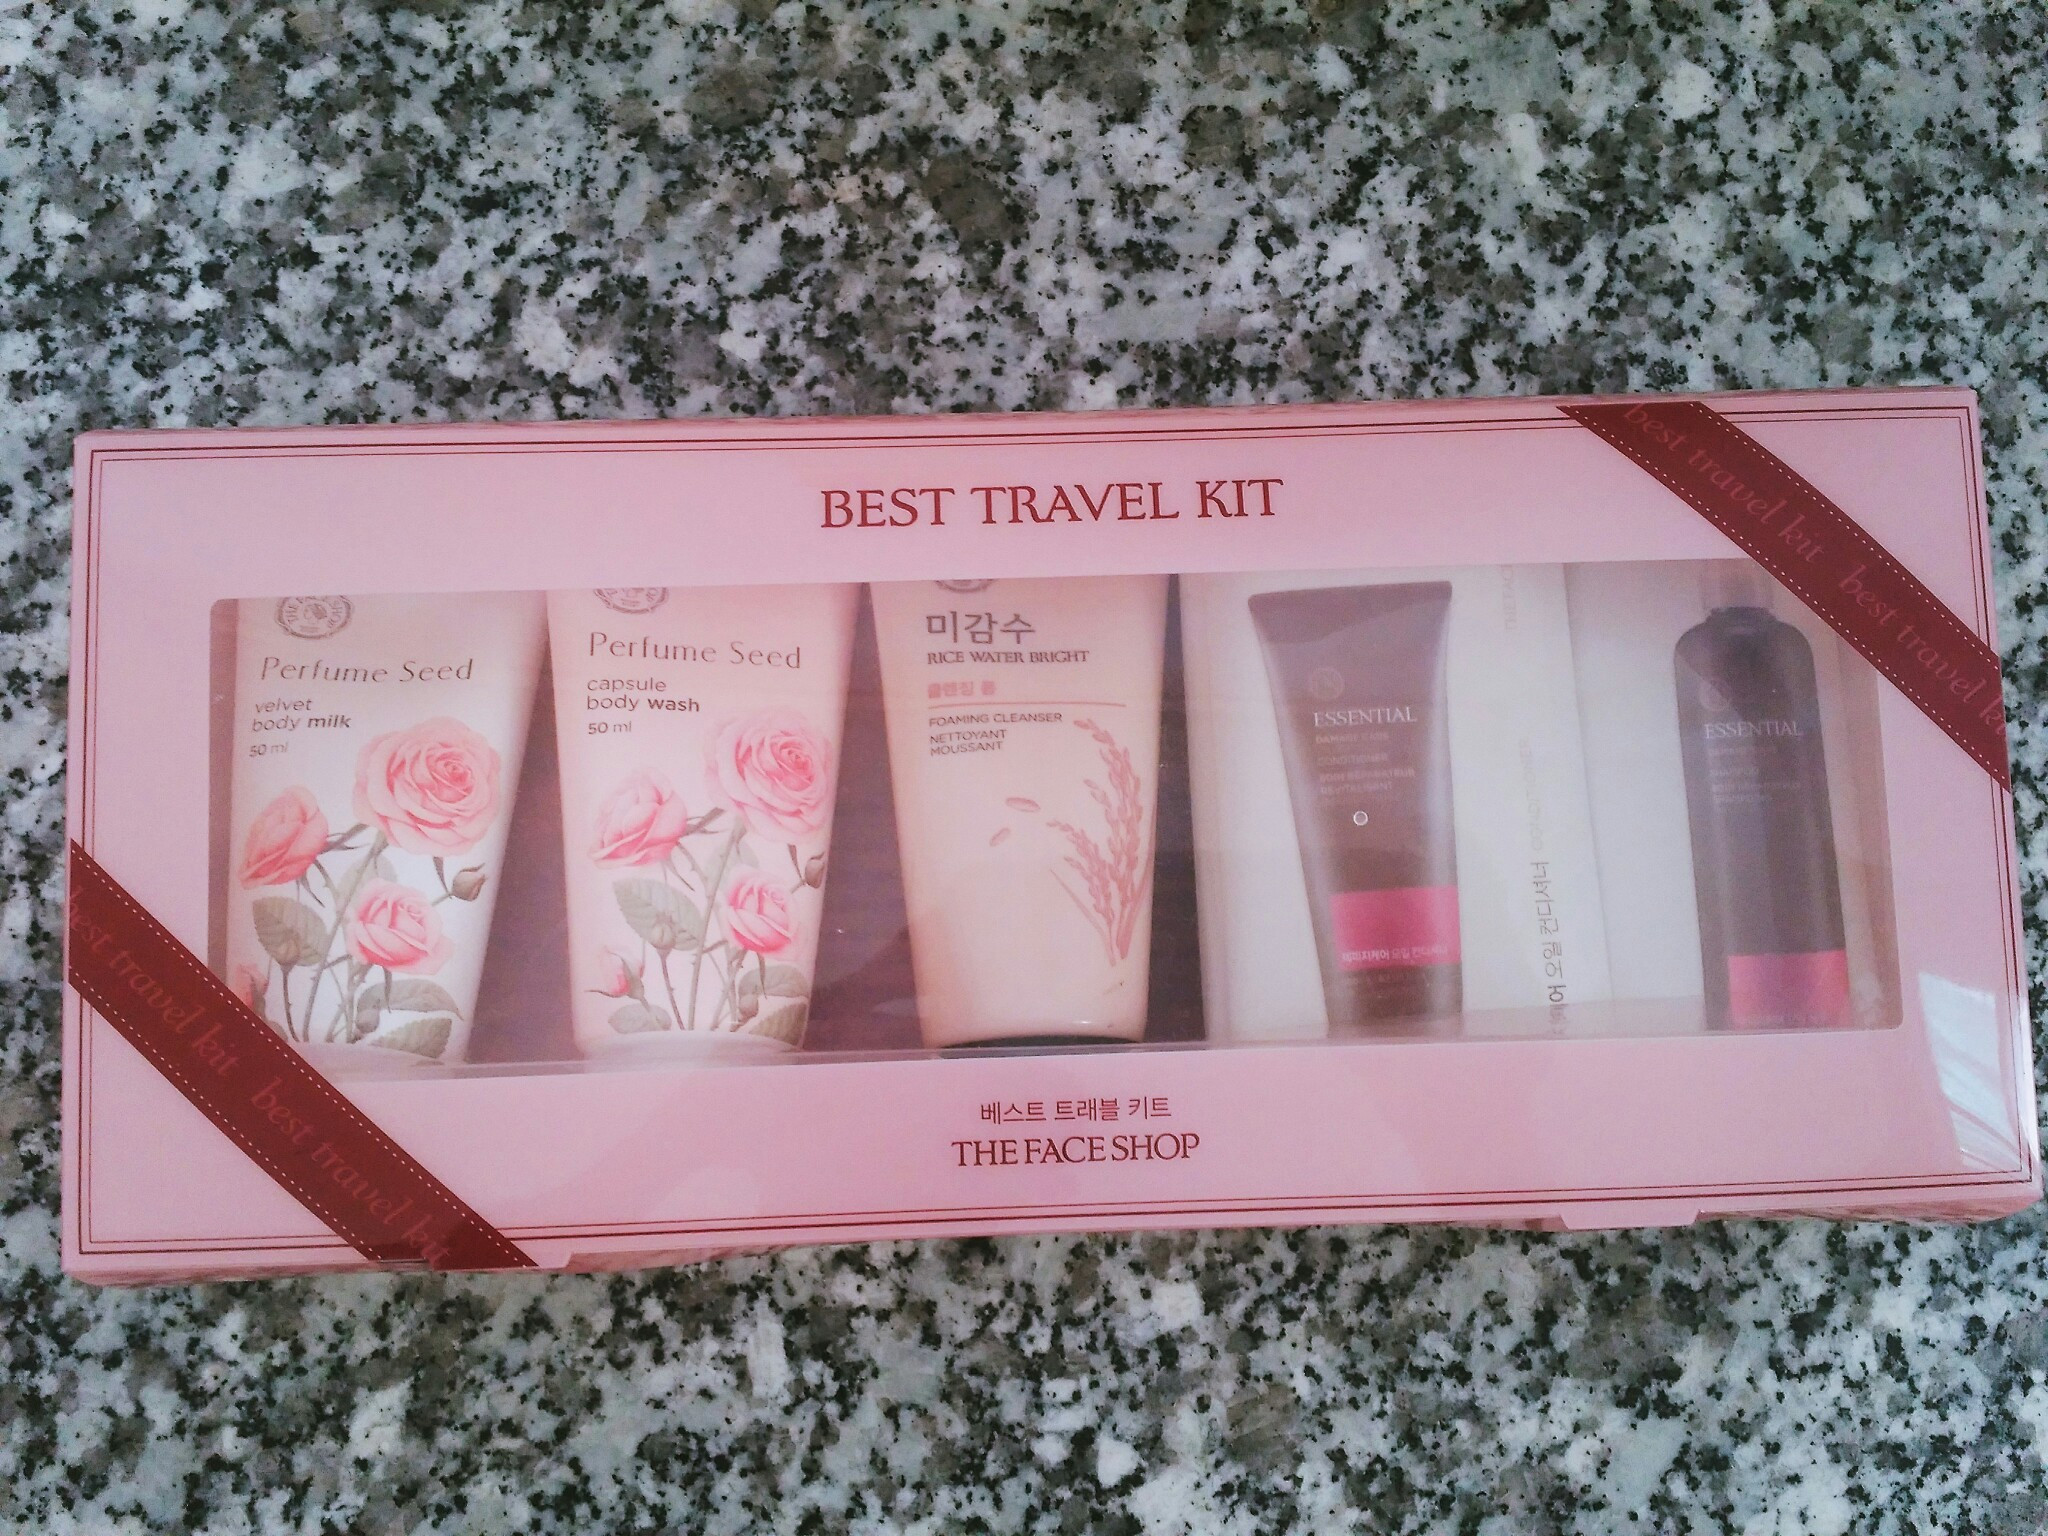 Bộ Mỹ Phẩm Du Lịch - Best Travel Kit The Face Shop